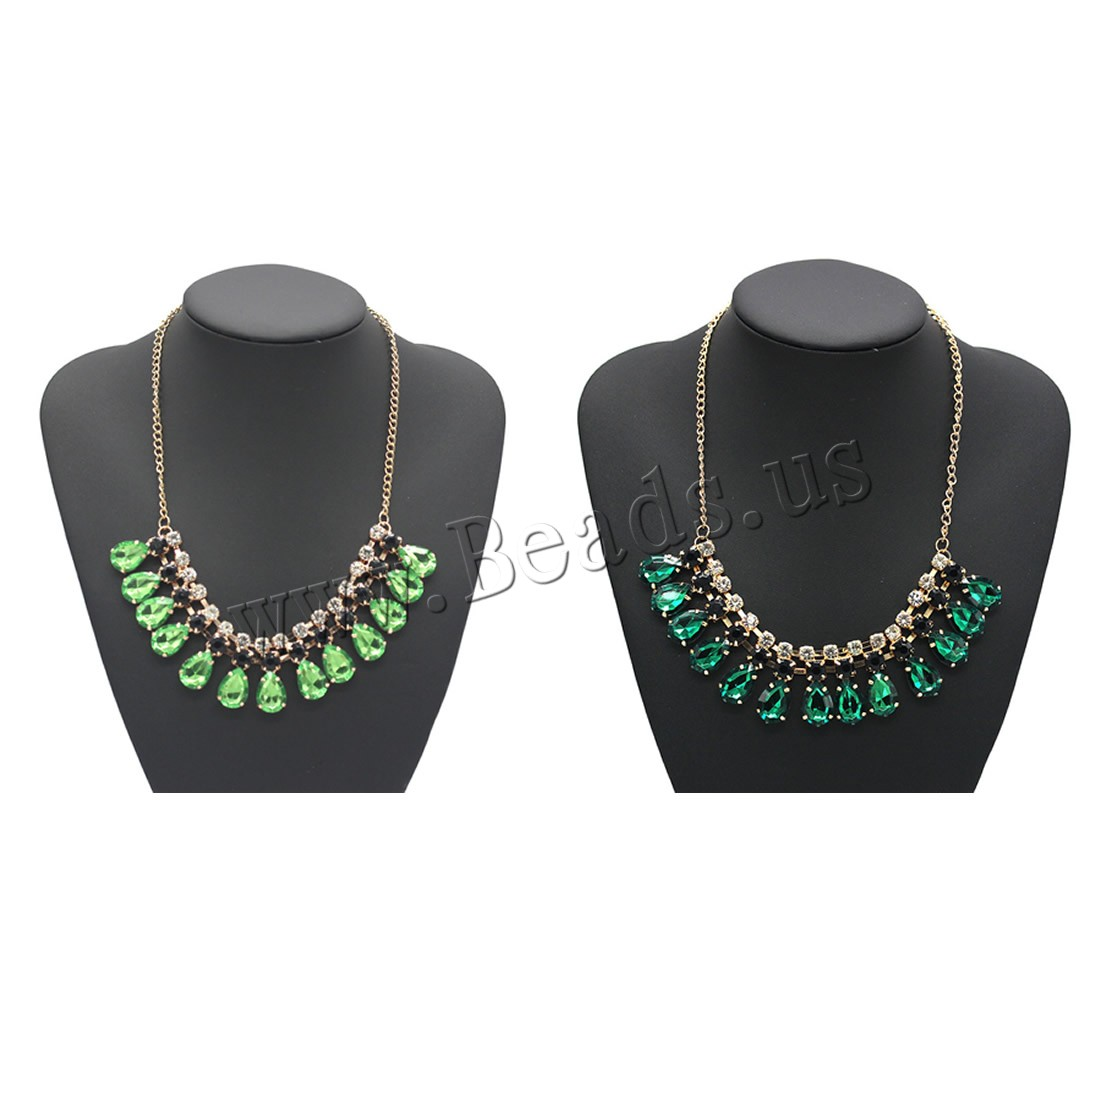 Buy Crystal Zinc Alloy Necklace Crystal 5cm extender chain gold color plated twist oval chain & woman & faceted & rhinestone colors choice lead & cadmium free 450mm Sold Per Approx 17.5 Inch Strand